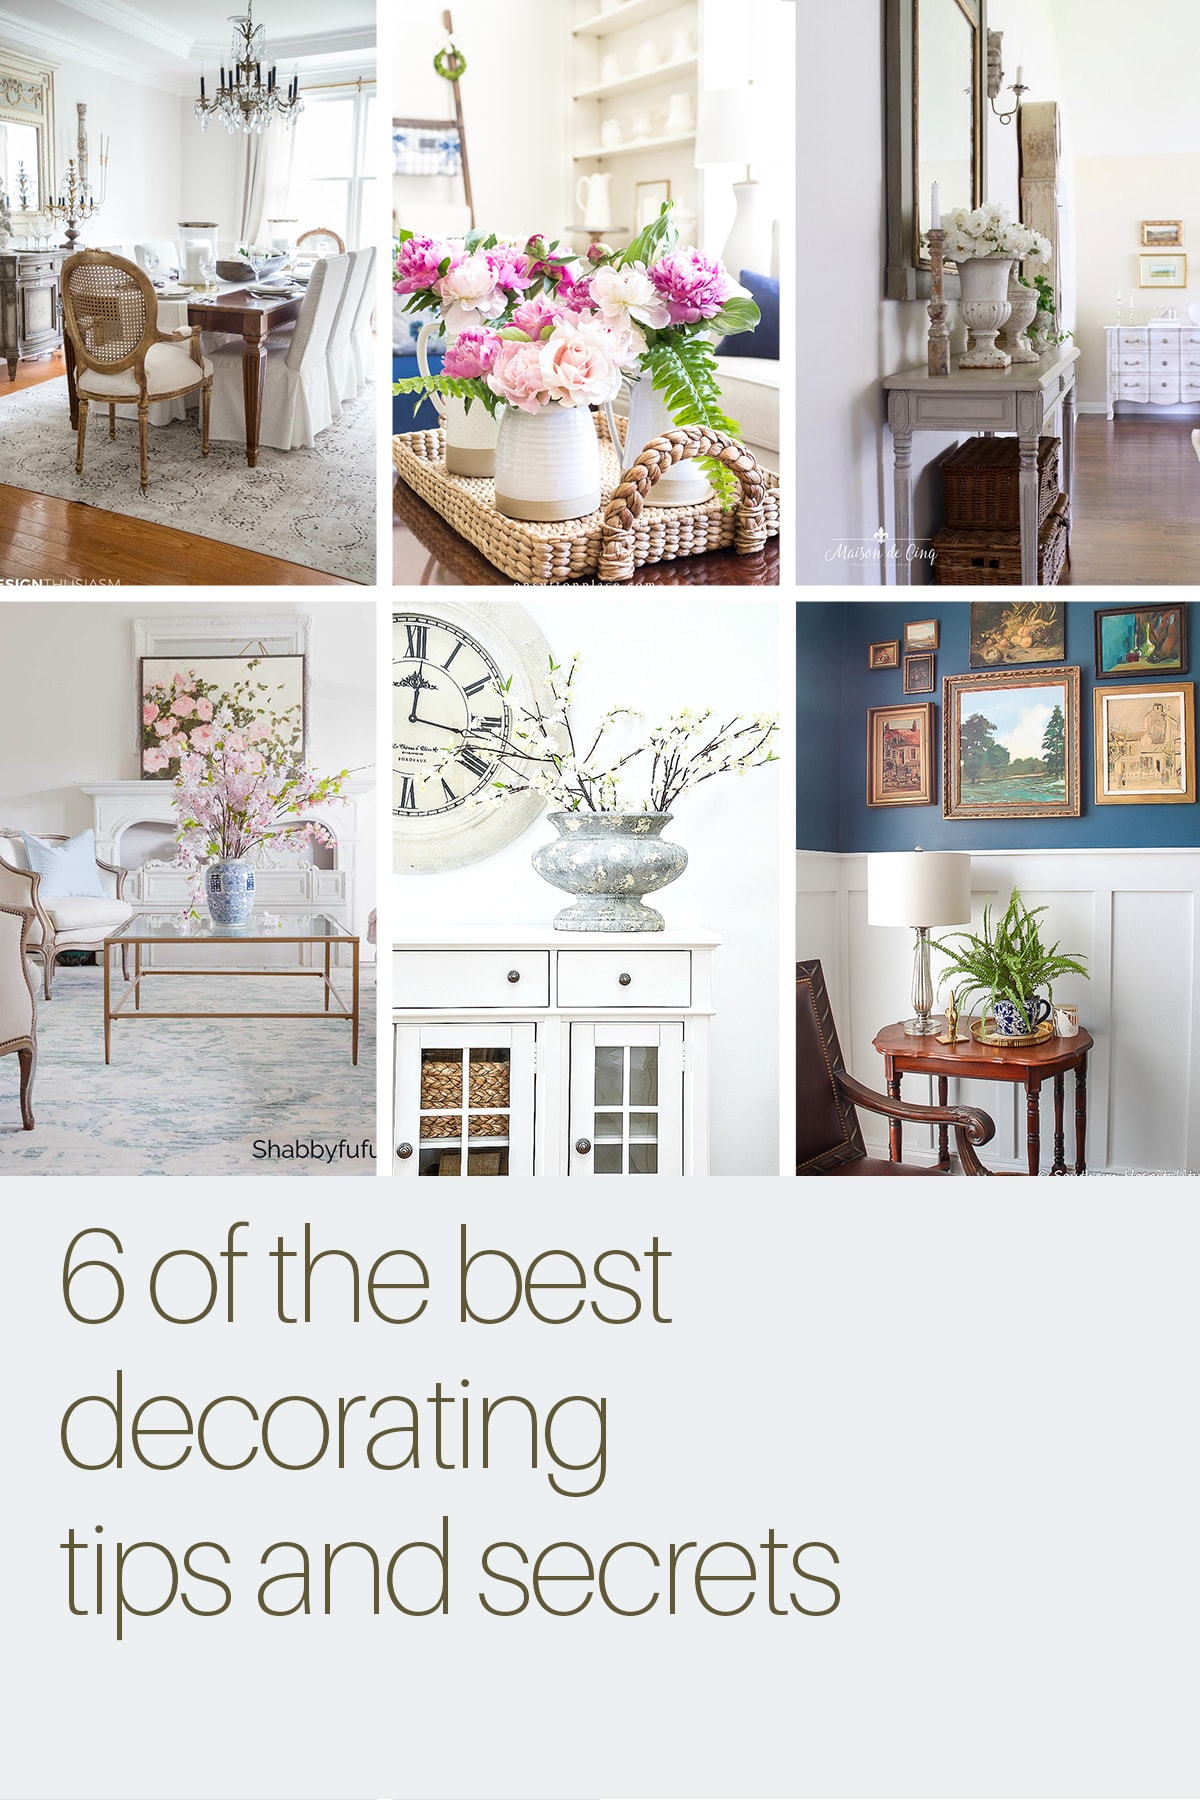 decorating tips and ideas